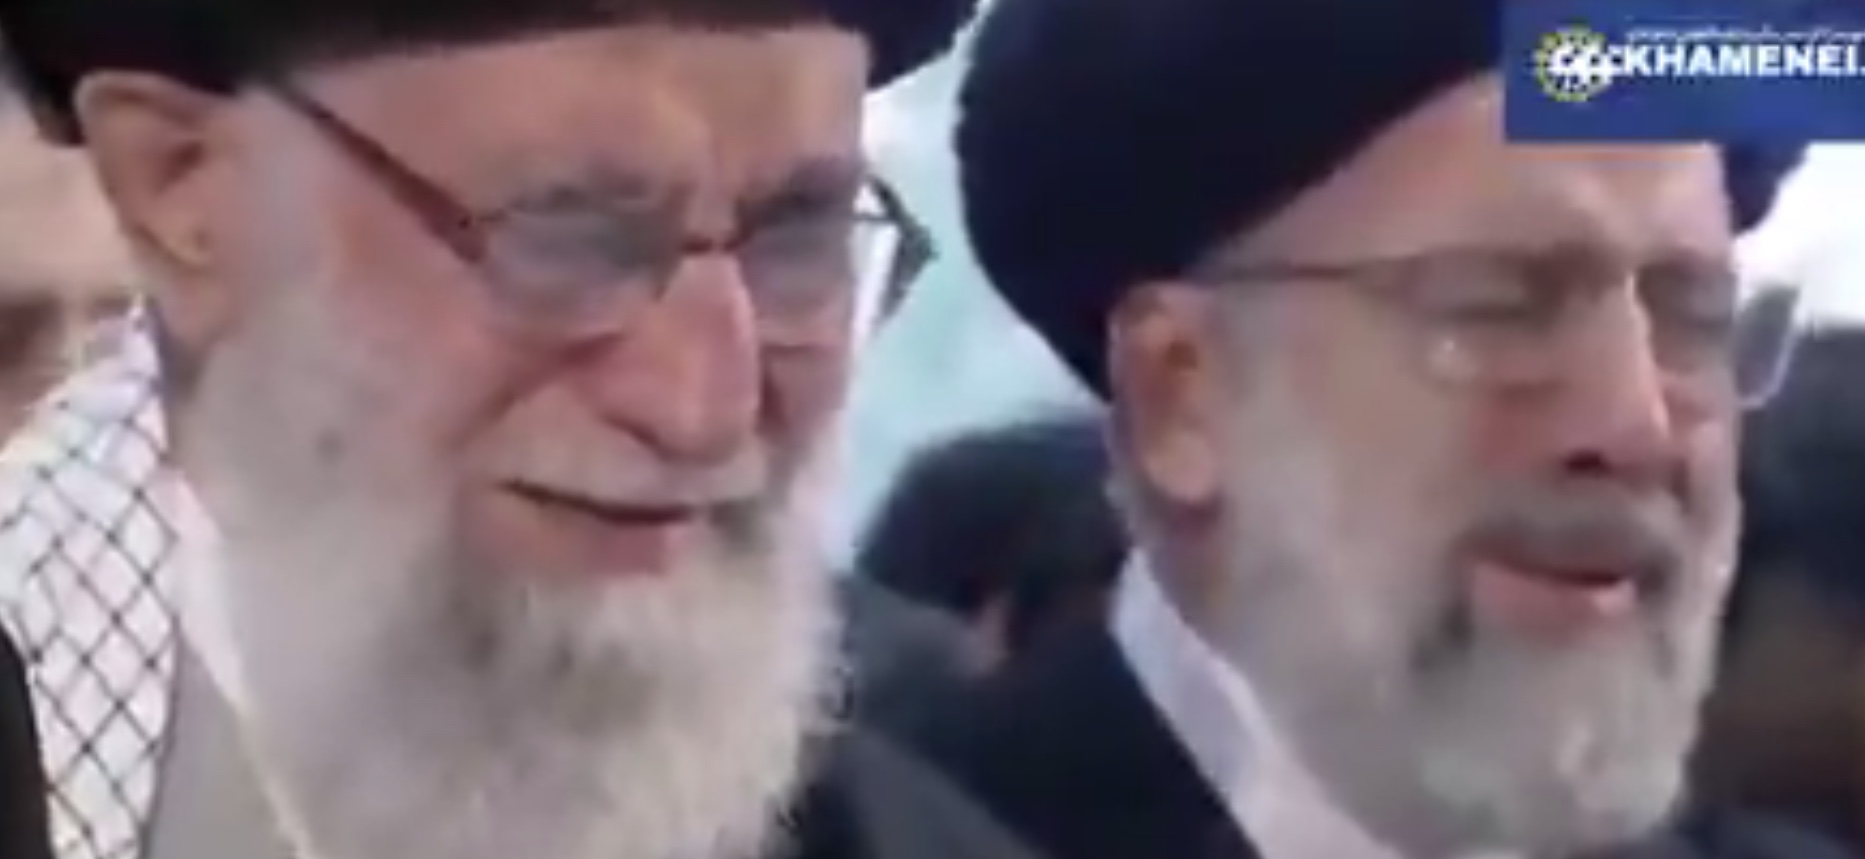 Ayatollah Ali Khamenei openly weeps at the funeral of MGen Qasem Soleimani, Jan. 6, 2020. Twitter screenshot/Imam of Peace